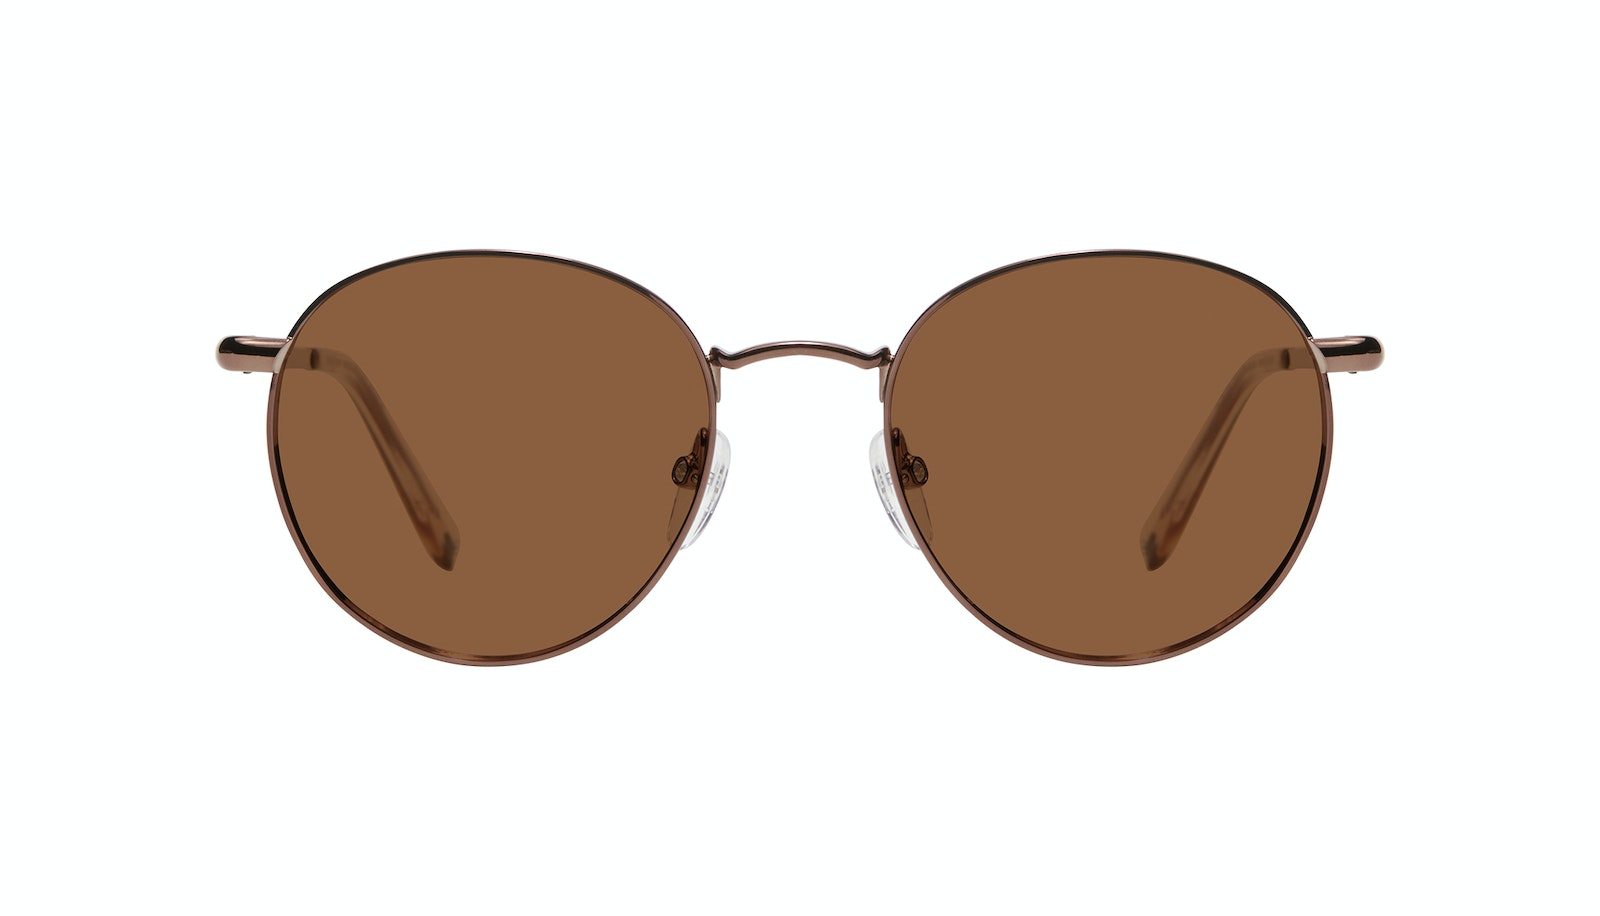 Affordable Fashion Glasses Round Sunglasses Women Dynasty S Copper